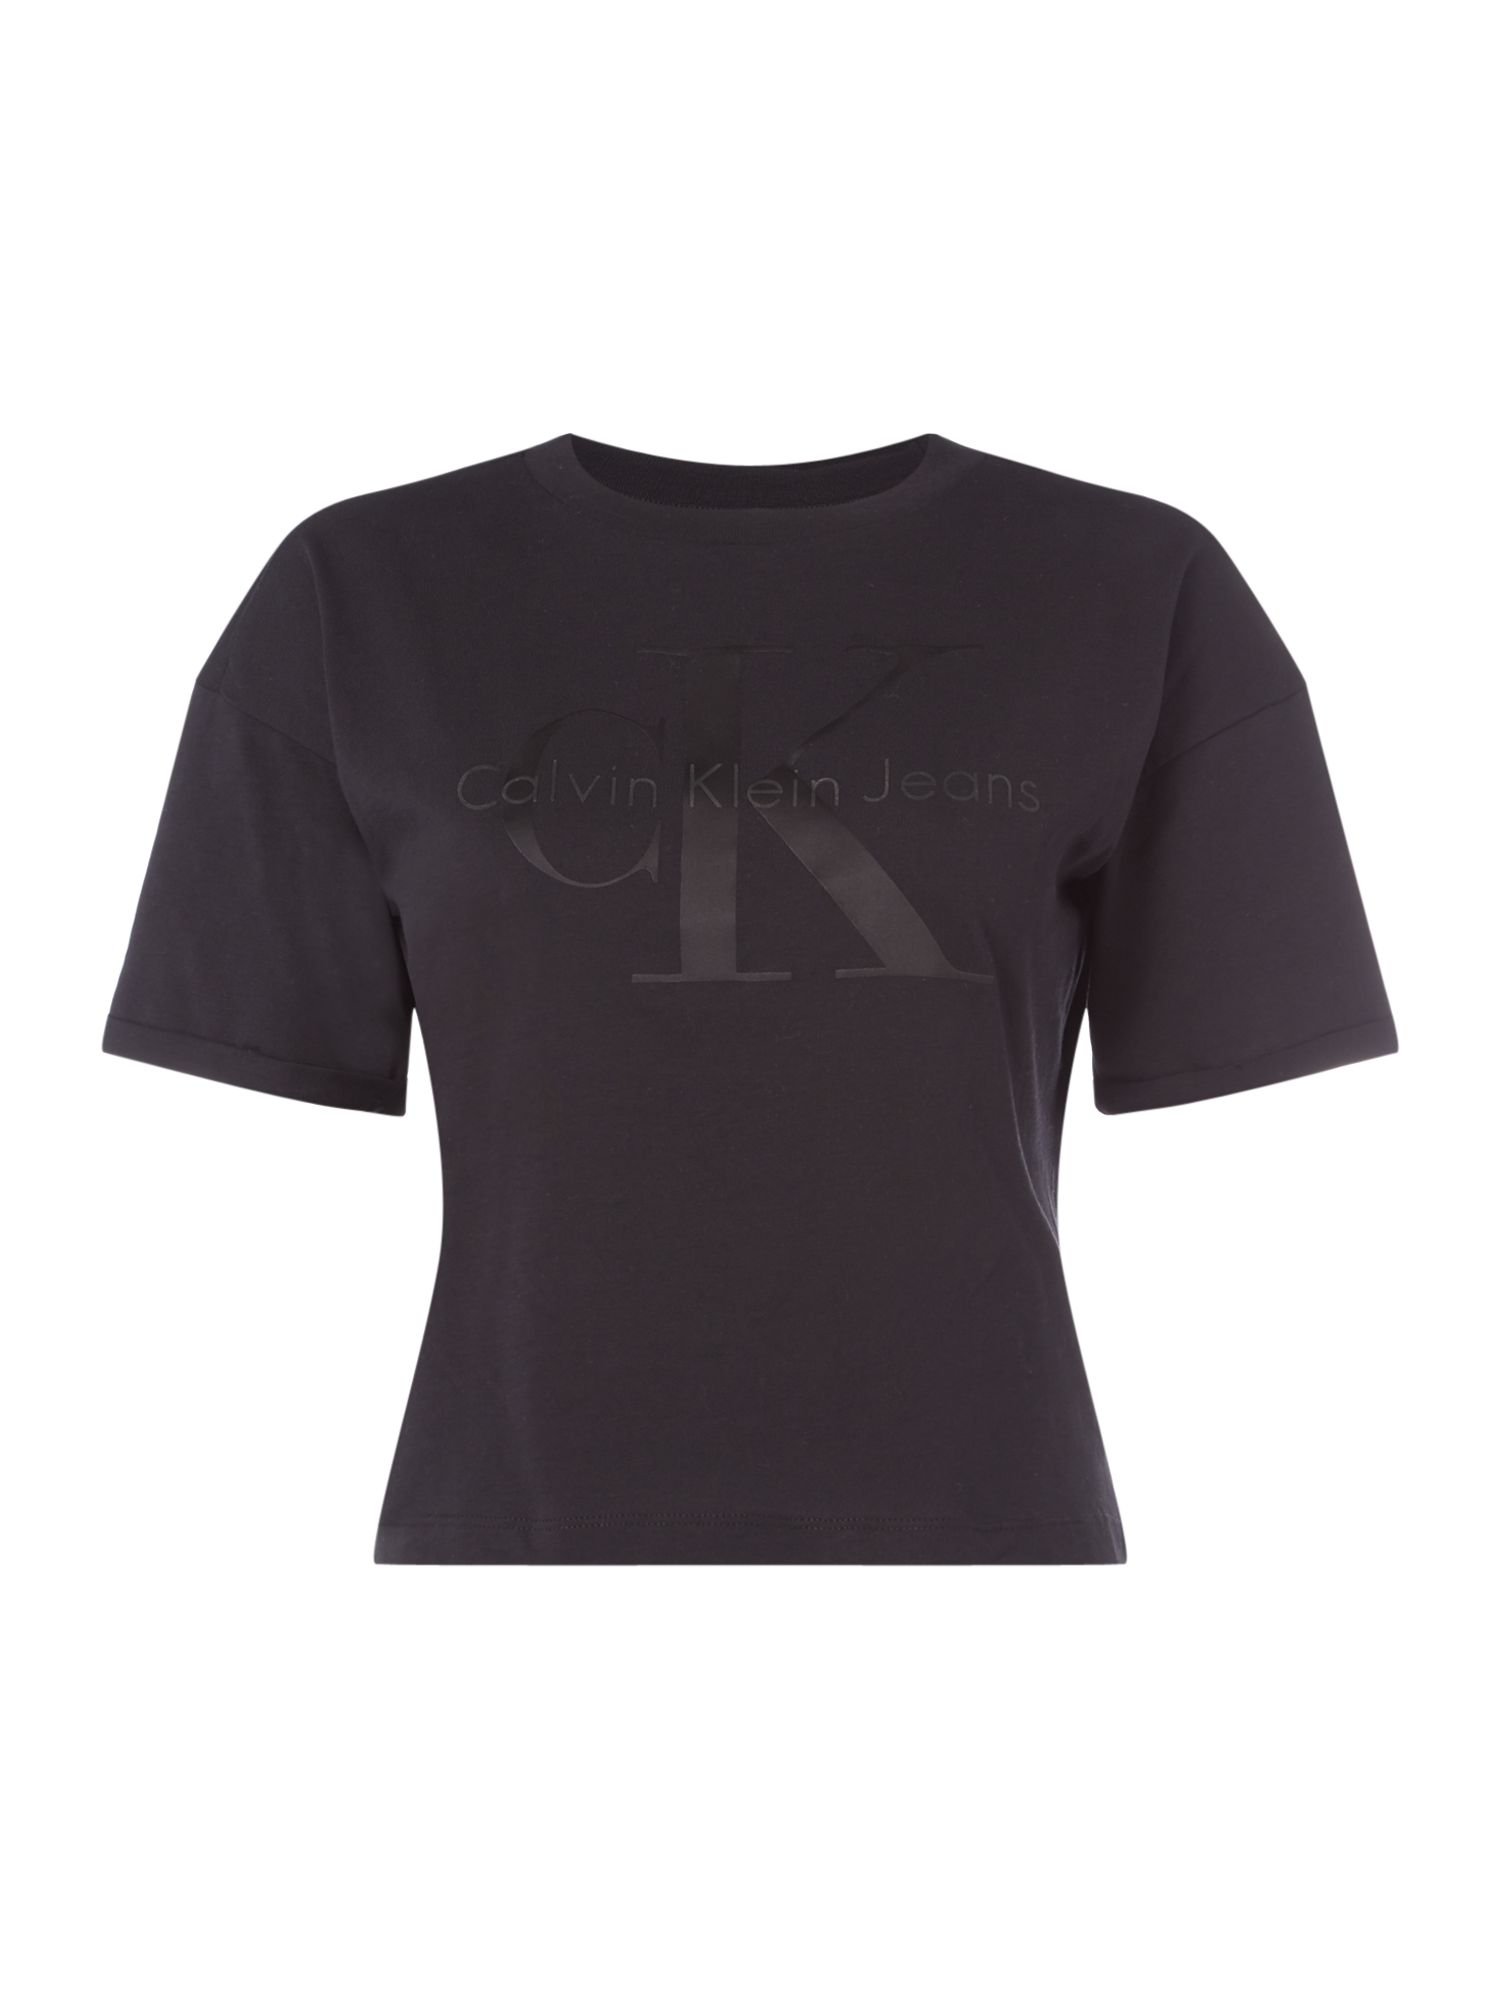 Calvin Klein Short Sleeves CK Logo Tee Shirt, Black